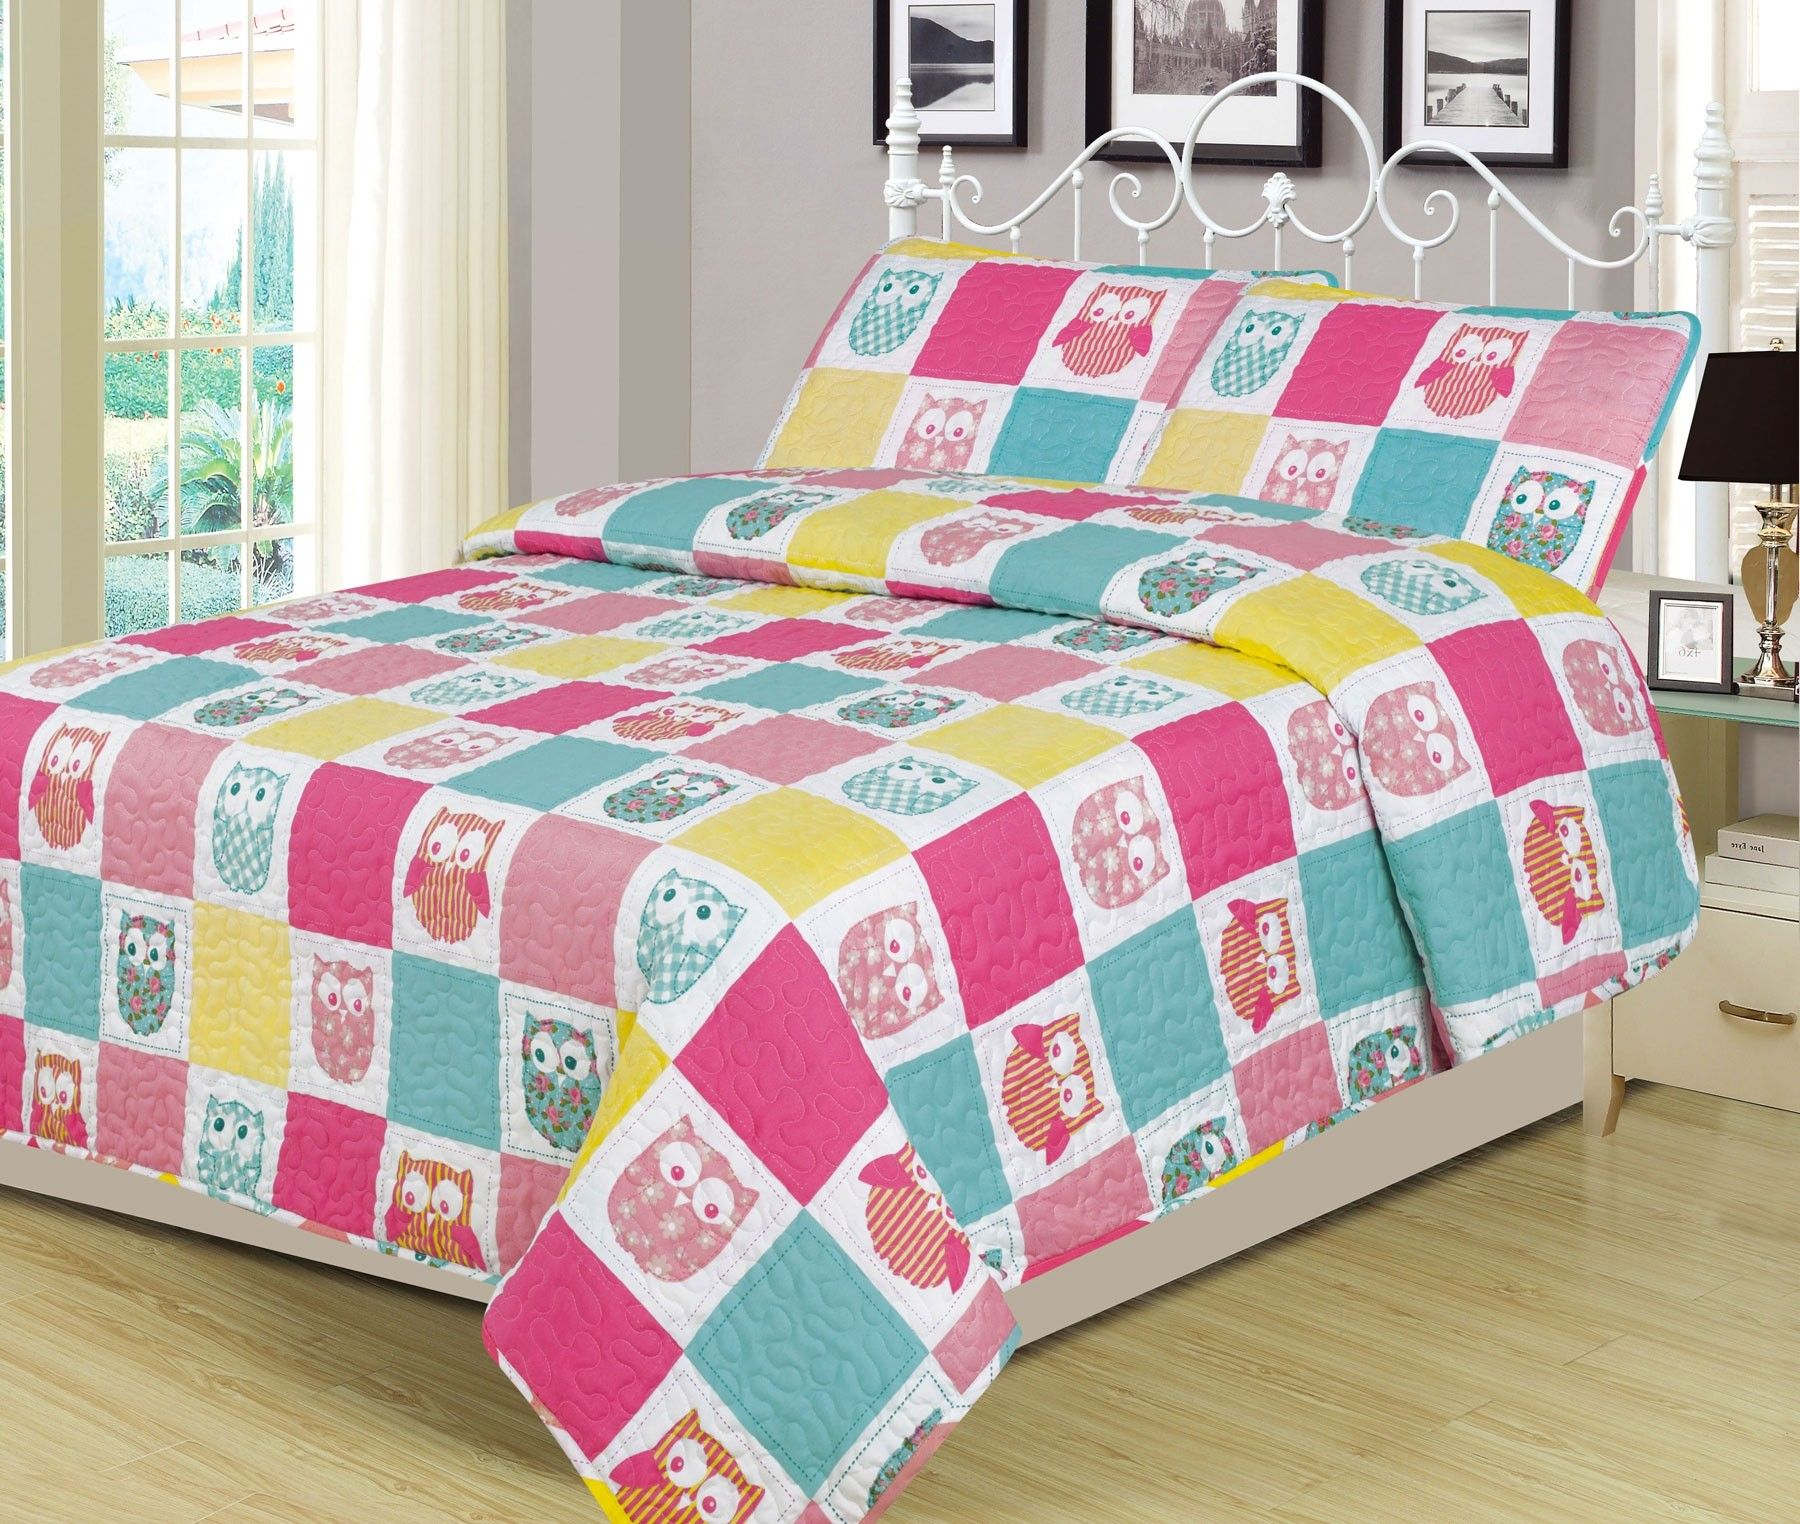 Beatrice Home Fashions Owl Patchwork Full 3 Piece Bed Set Quilt